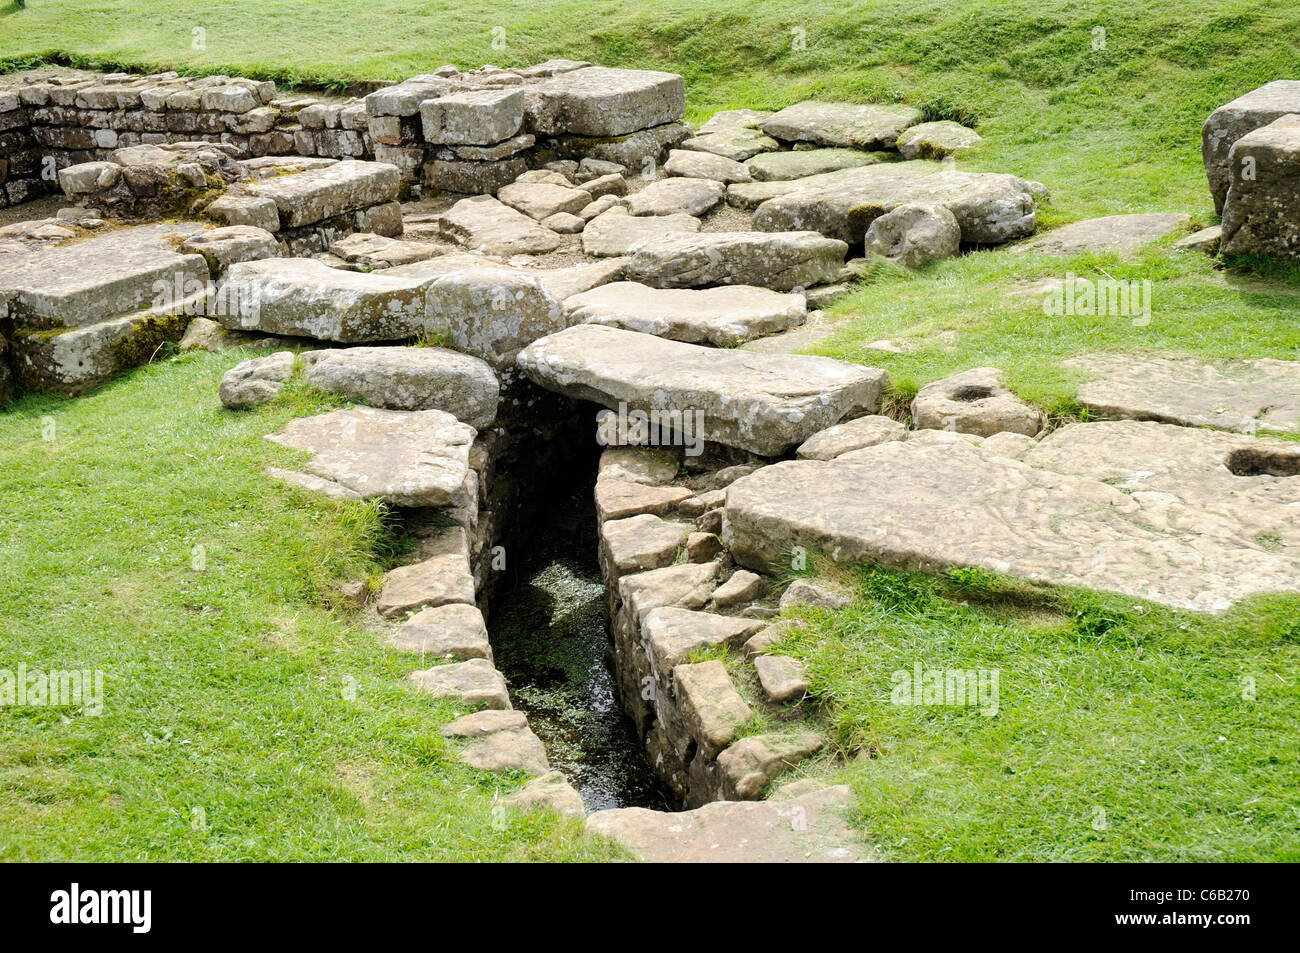 Roman drain at Chesters Fort, on Hadrian's Wall, England. - Stock Image